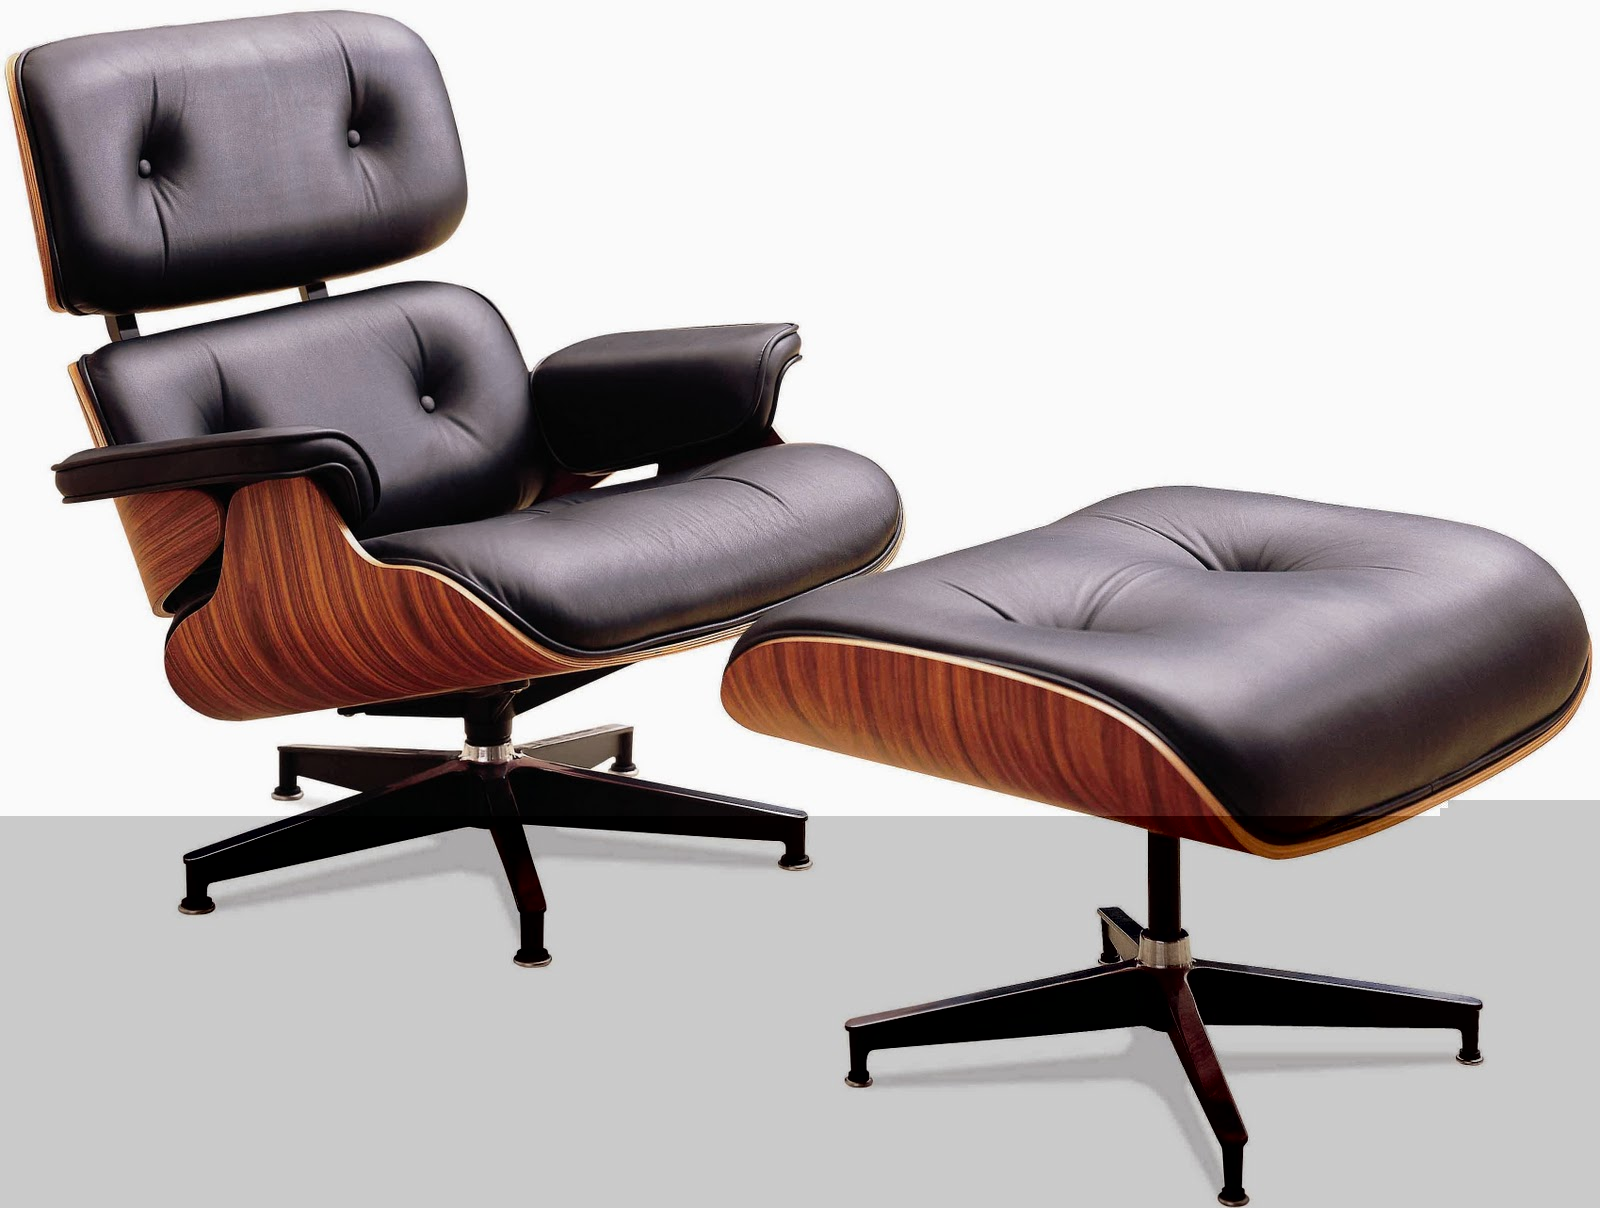 El sillon lounge chair de eames un cl sico muy actual el for Sillas y sillones modernos